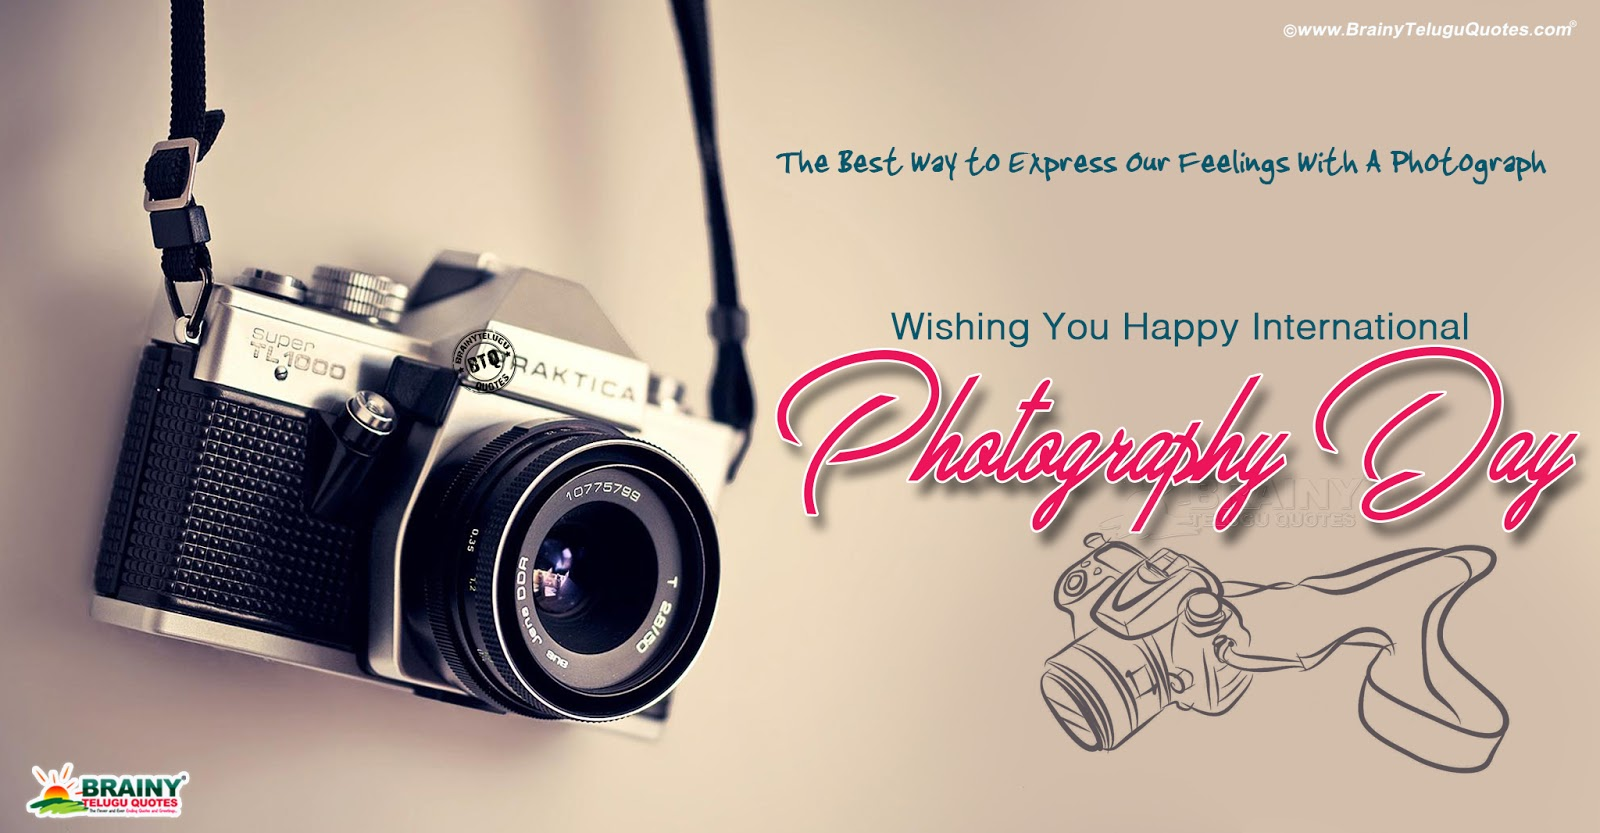 World Photography Day Greetings In English August 19th World Photography Day English Greetings Brainyteluguquotes Comtelugu Quotes English Quotes Hindi Quotes Tamil Quotes Greetings